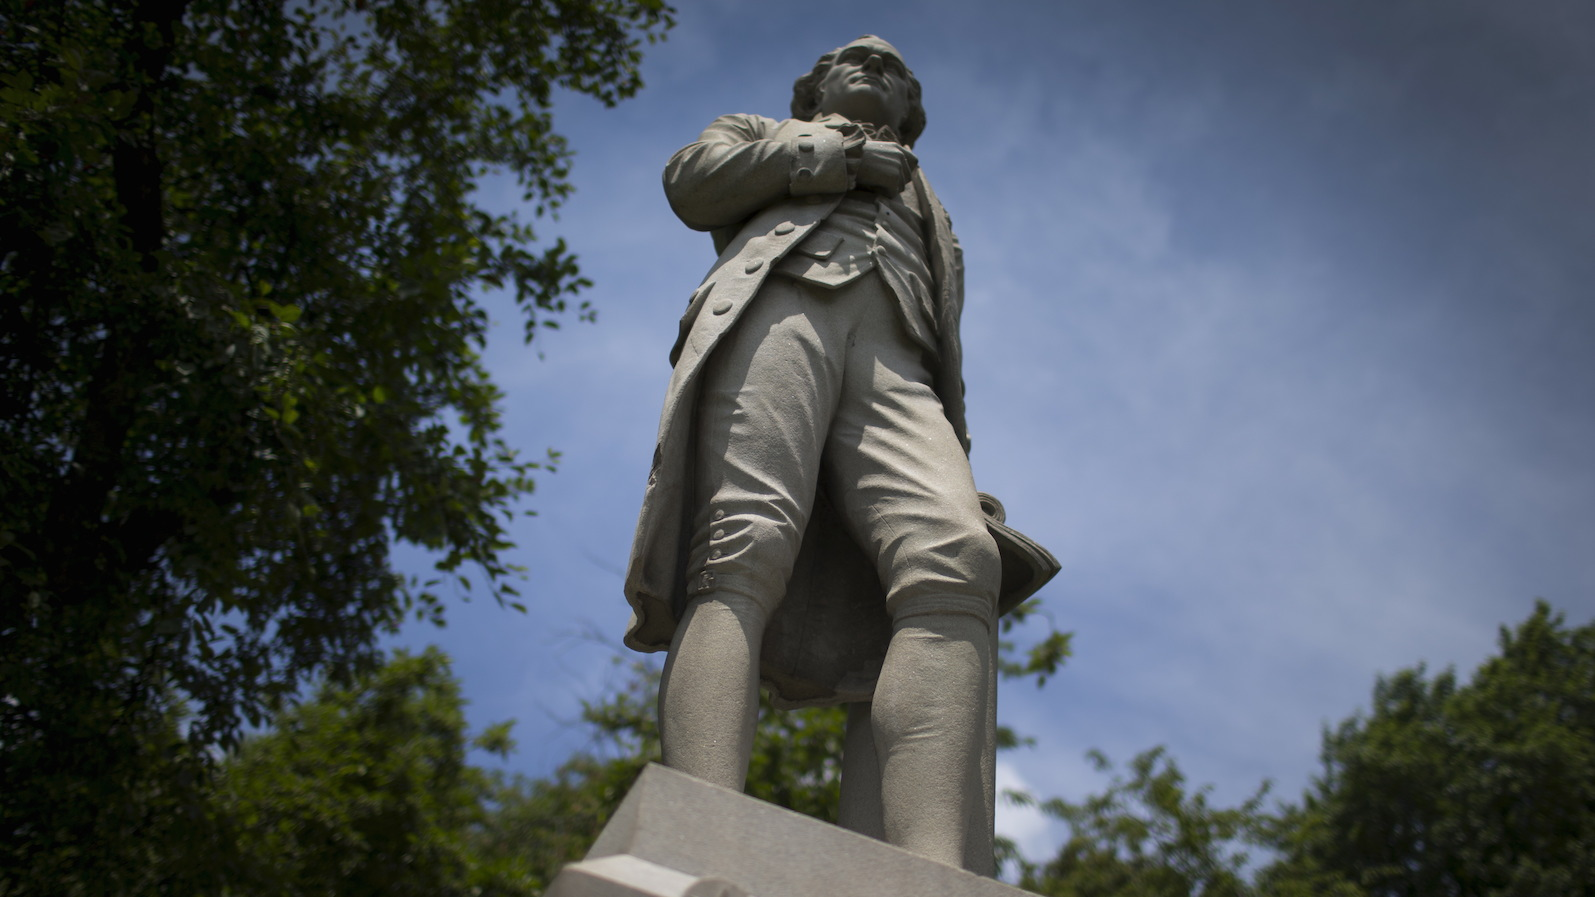 """A statue of Alexander Hamilton stands in New York's Central Park July 28, 2015. A Broadway hip-hop musical """"Hamilton"""" is the hottest ticket in town this summer, and George Cox is, in a word, ecstatic. Cox, founder of the Seattle-based Alexander Hamilton Friends Association, is one of thousands of Americans who have toiled for years to promote the much-neglected legacy of one of the  founding fathers of the United States. Picture taken July 28, 2015. To match THEATRE-HAMILTON/MUSICAL REUTERS/Mike Segar - RTX1MJLJ"""